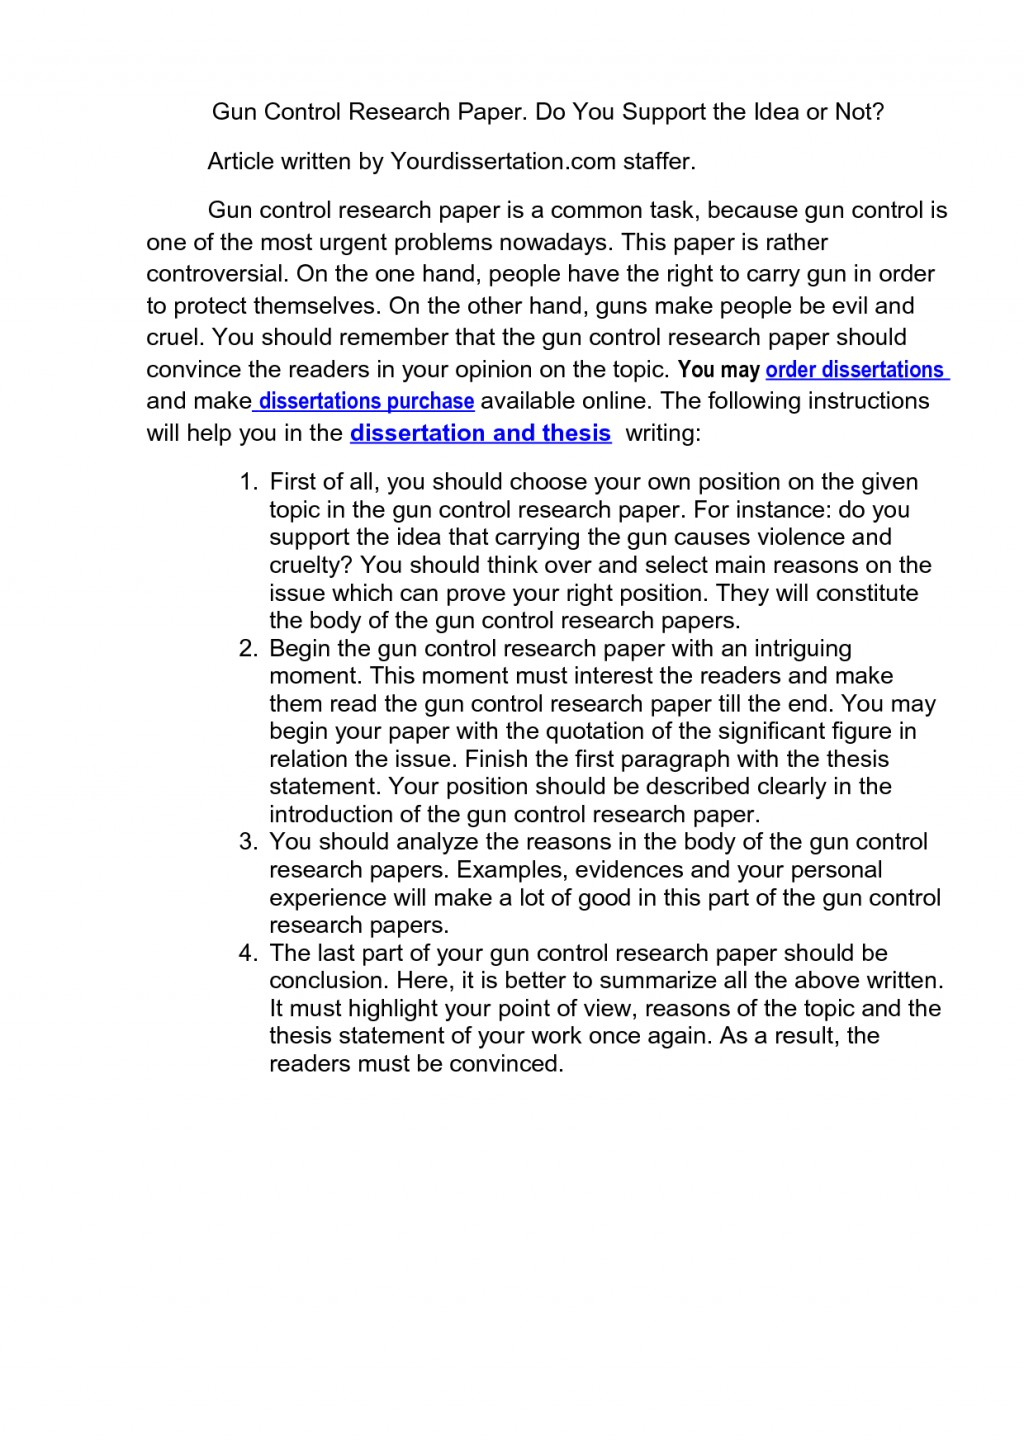 014 Research Paper Argumentative Thesis Statement Examples Template Gun Control Example Essay Stunning Large